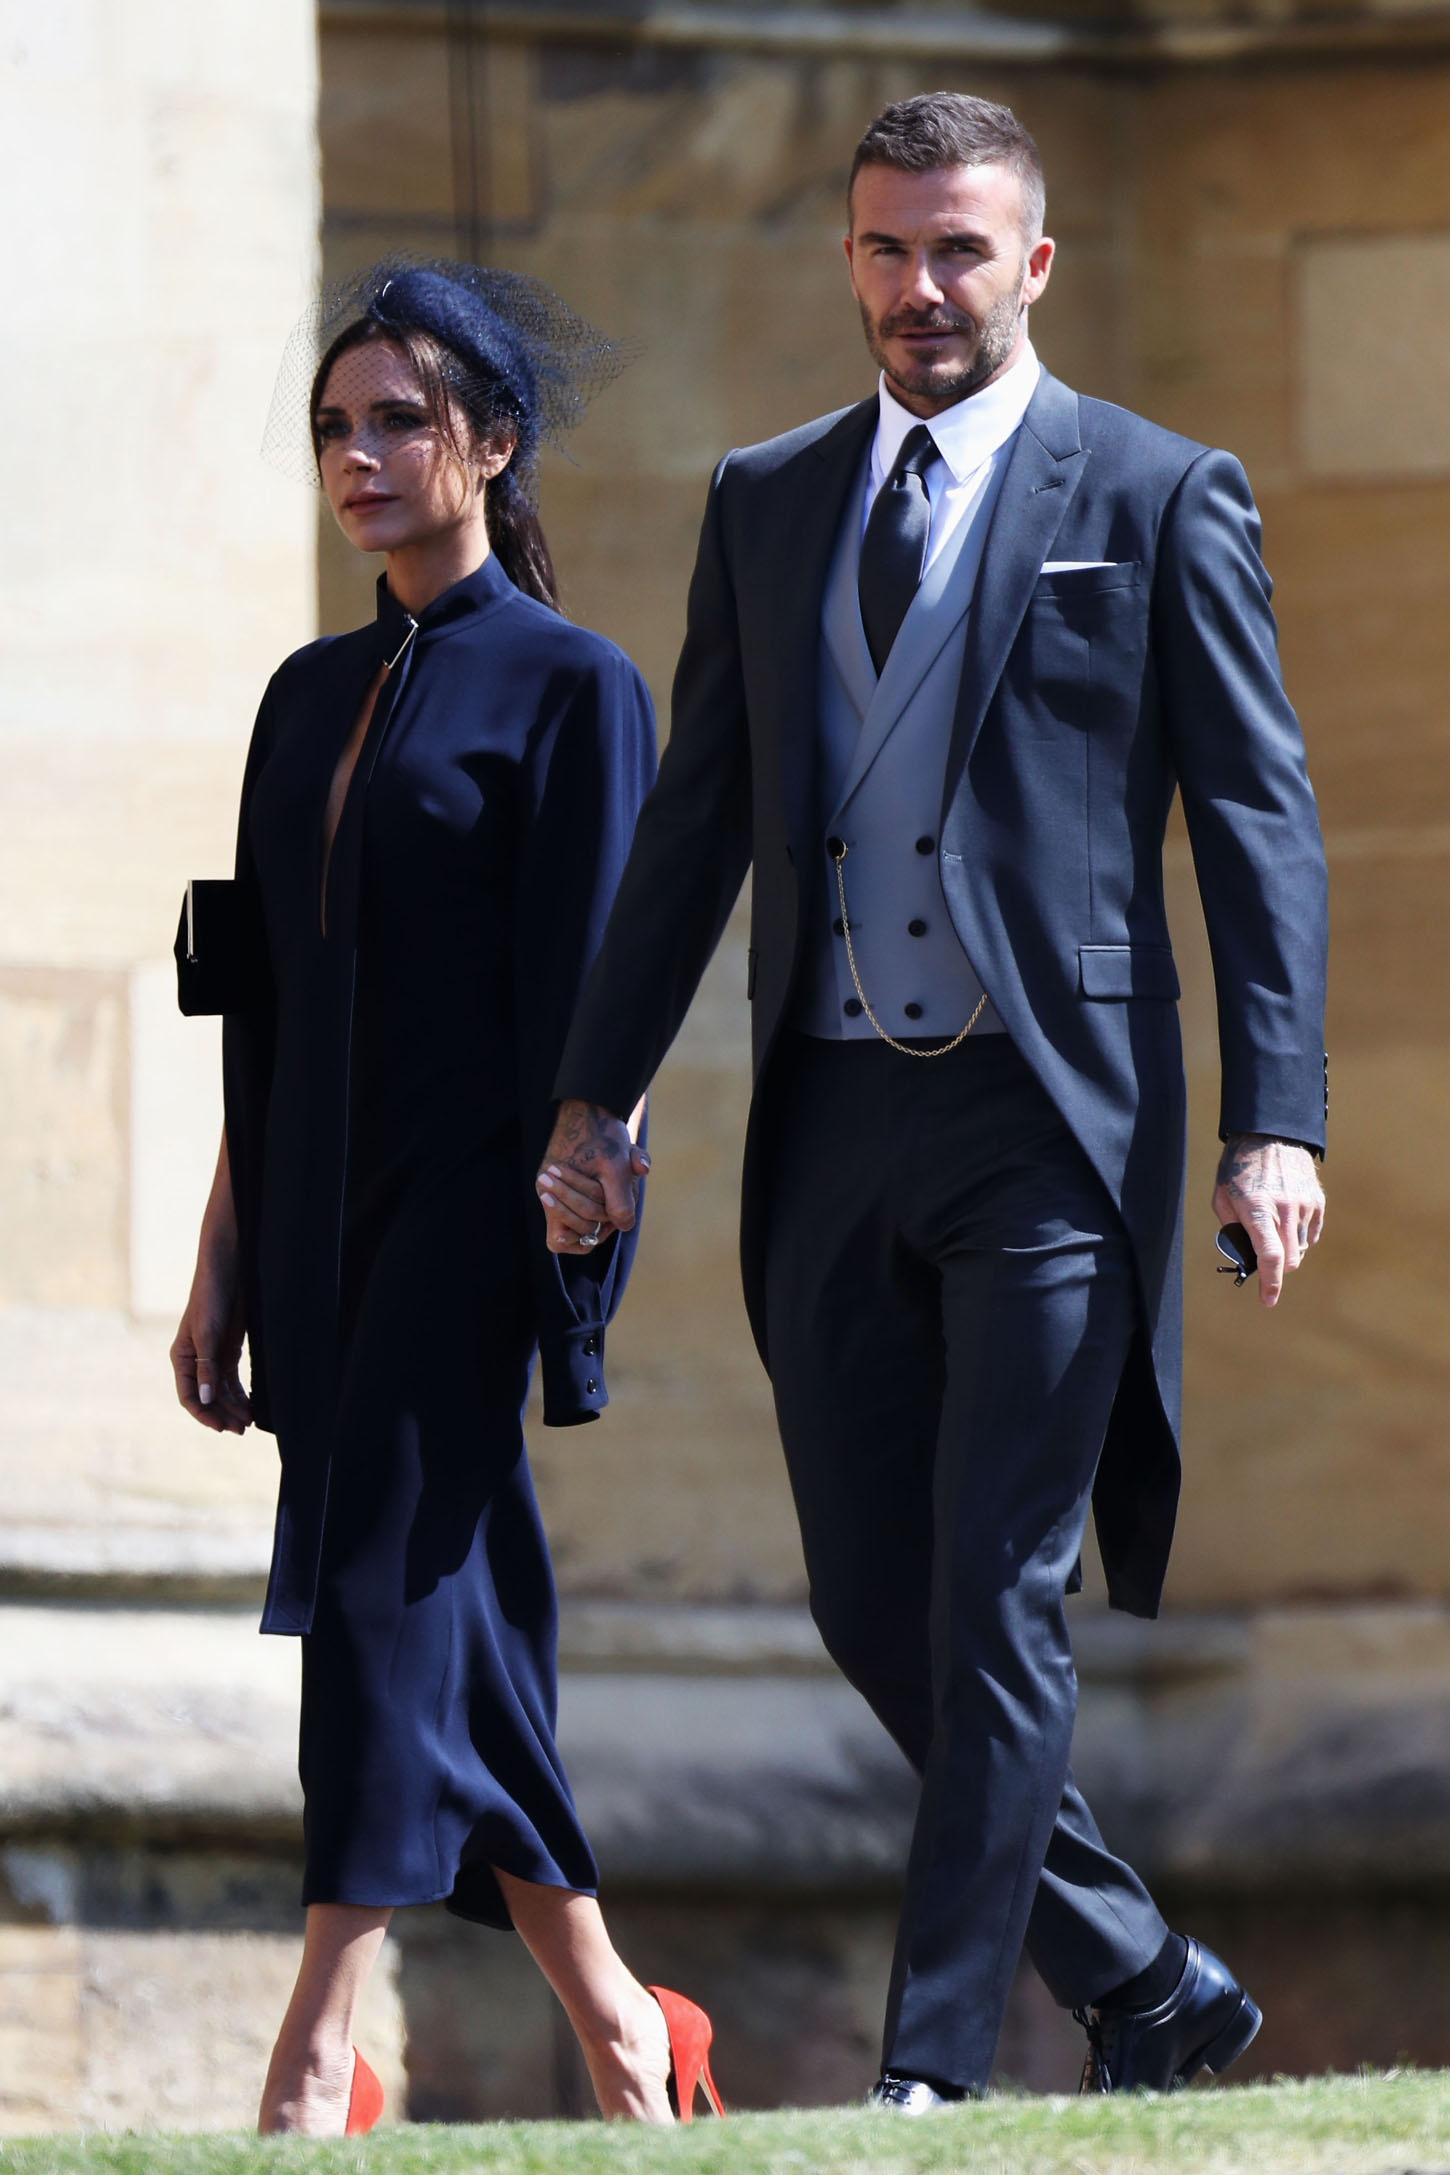 WINDSOR, ENGLAND - MAY 19: Victoria Beckham and David Beckham arrive at the wedding of Prince Harry to Ms Meghan Markle at St George's Chapel, Windsor Castle on May 19, 2018 in Windsor, England.  (Photo by Chris Jackson/Getty Images)